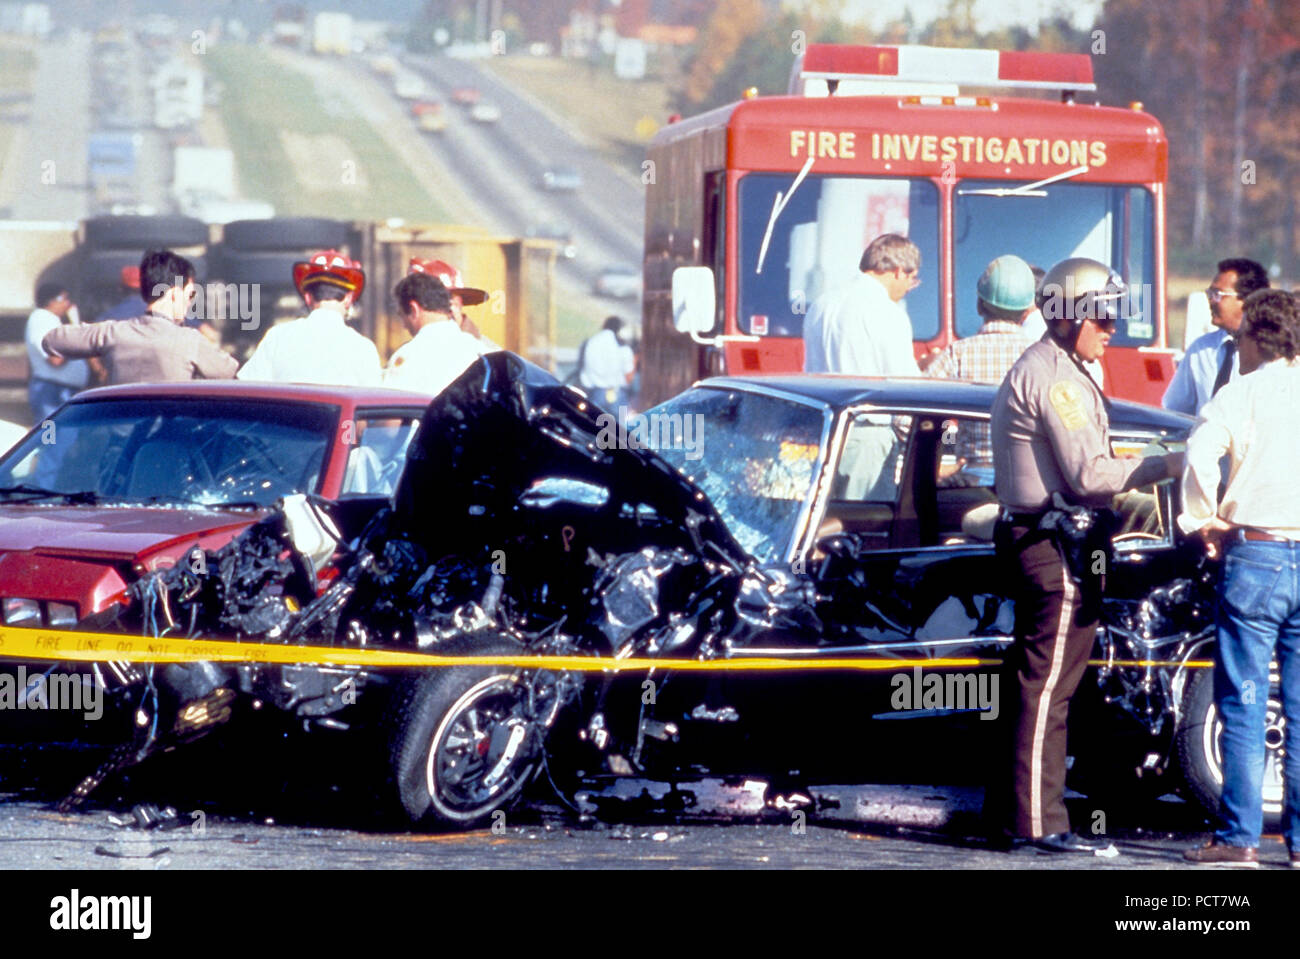 This photograph, captured in metropolitan Atlanta, Georgia, depicts what had been a severe motor vehicle collision. At this point, Atlanta police, paramedics, and the Fire Investigation Team, were all on the scene. The drivers' conditions were not known, nor the details surrounding the cause of this accident. - Stock Image